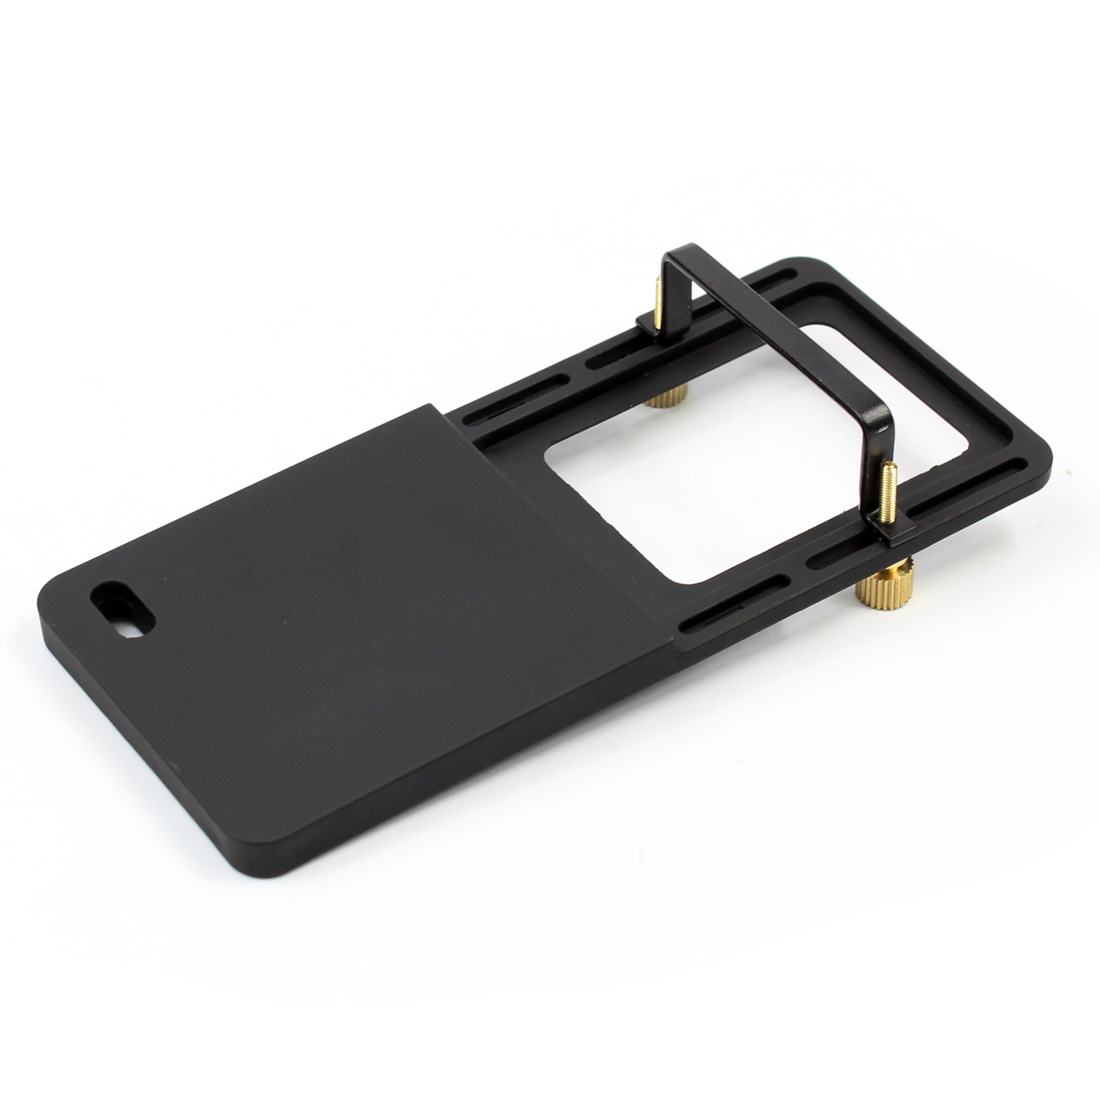 Stabilizer Gimbal Switch Plate Handheld Gimbal Stabilizer Mount Plate Adapter For GoPro Hero 4 3+ Yi 4k Action Camera